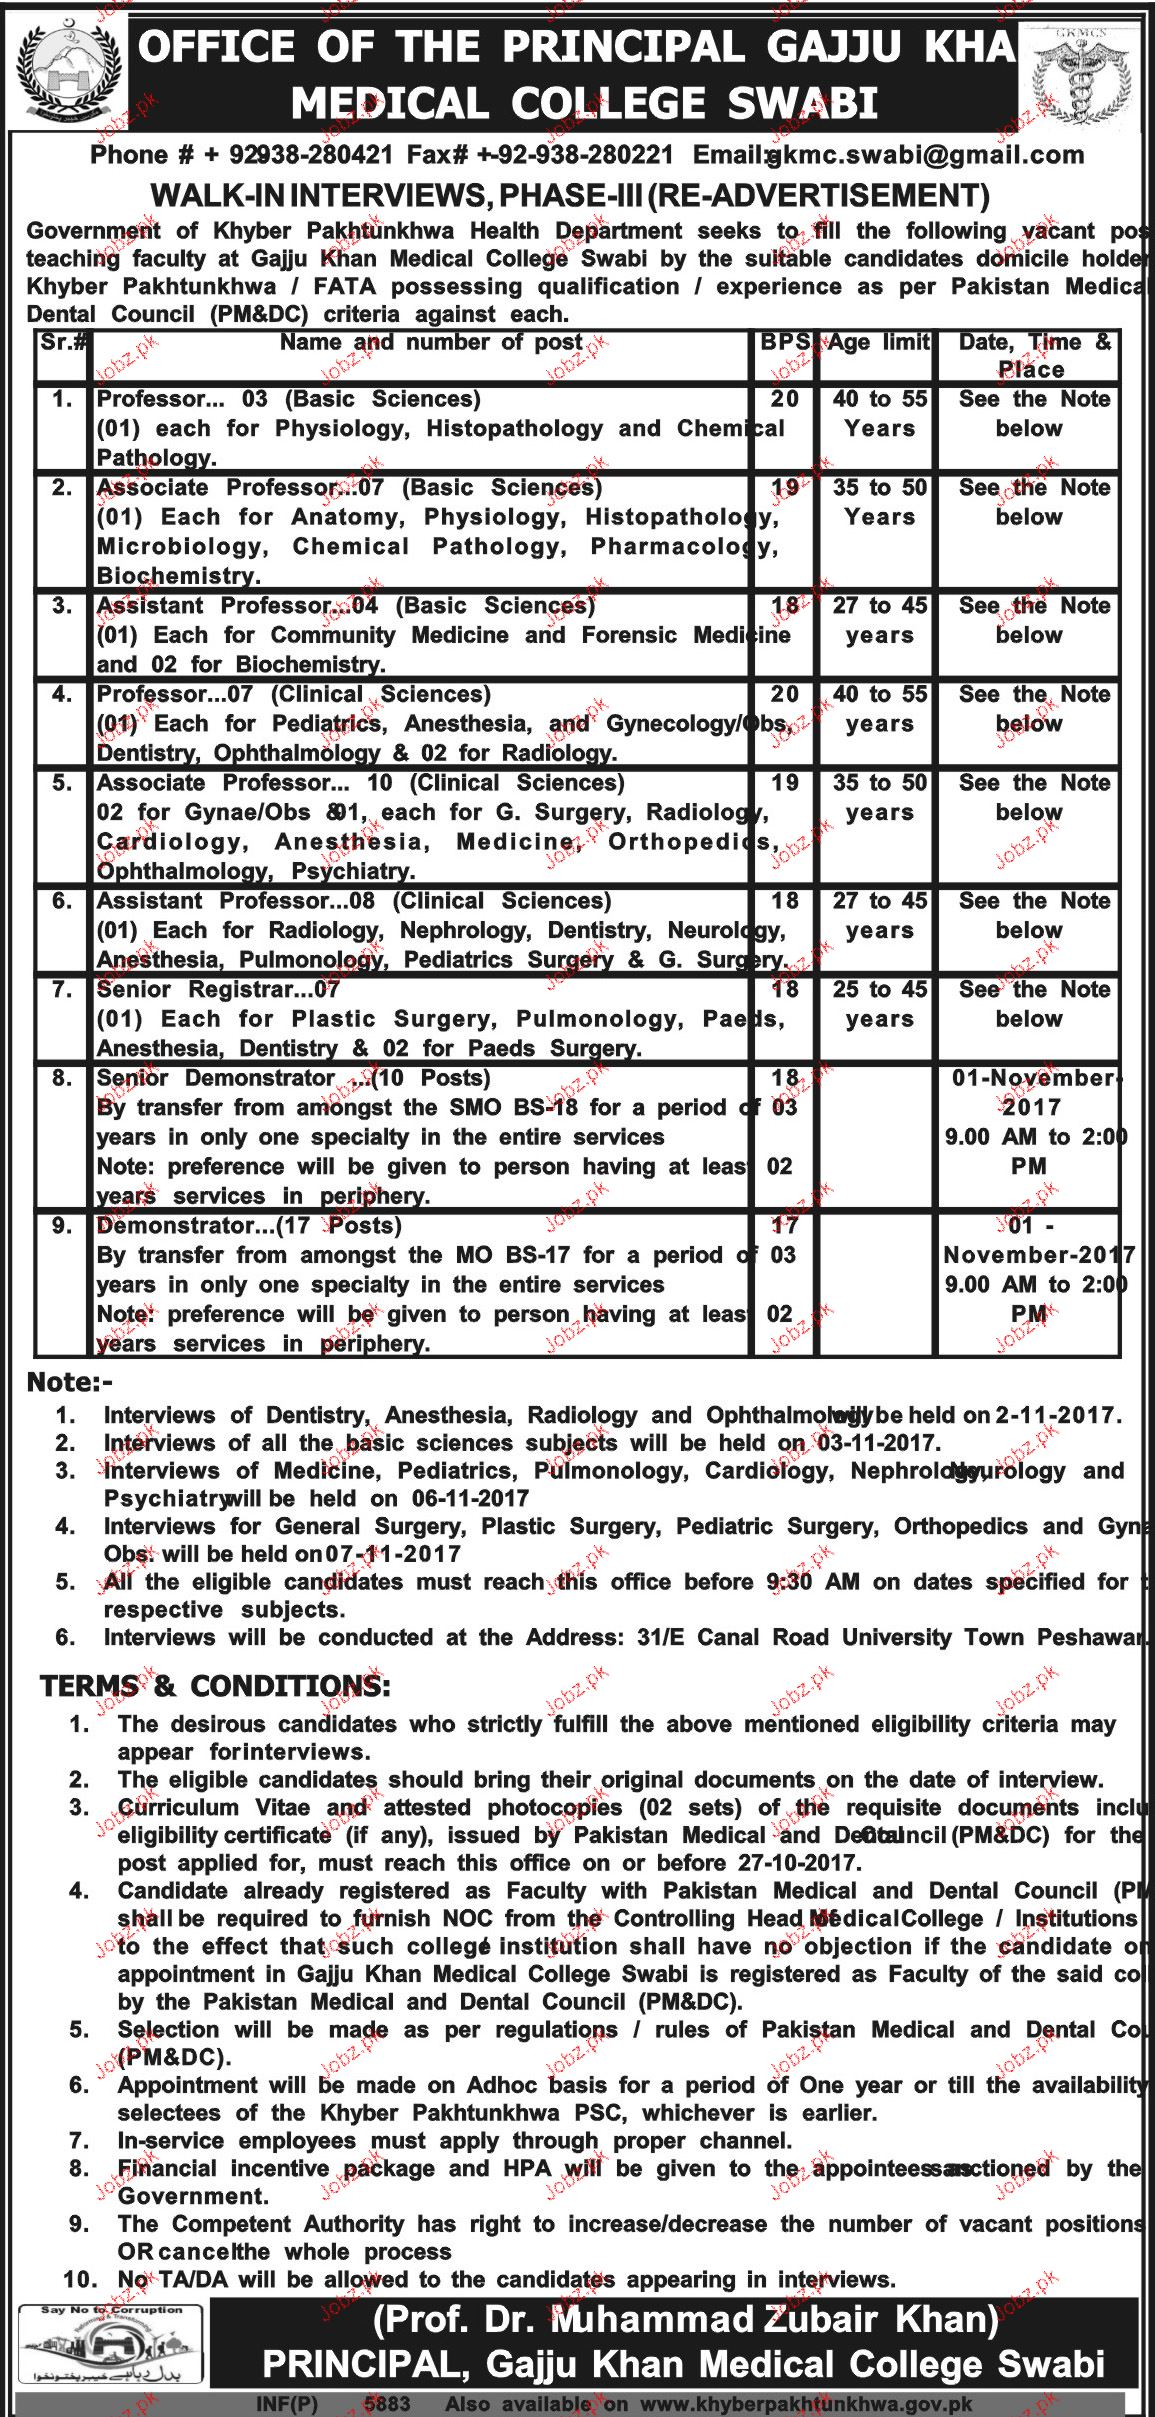 Gajju Khan Medical College Swabi Jobs